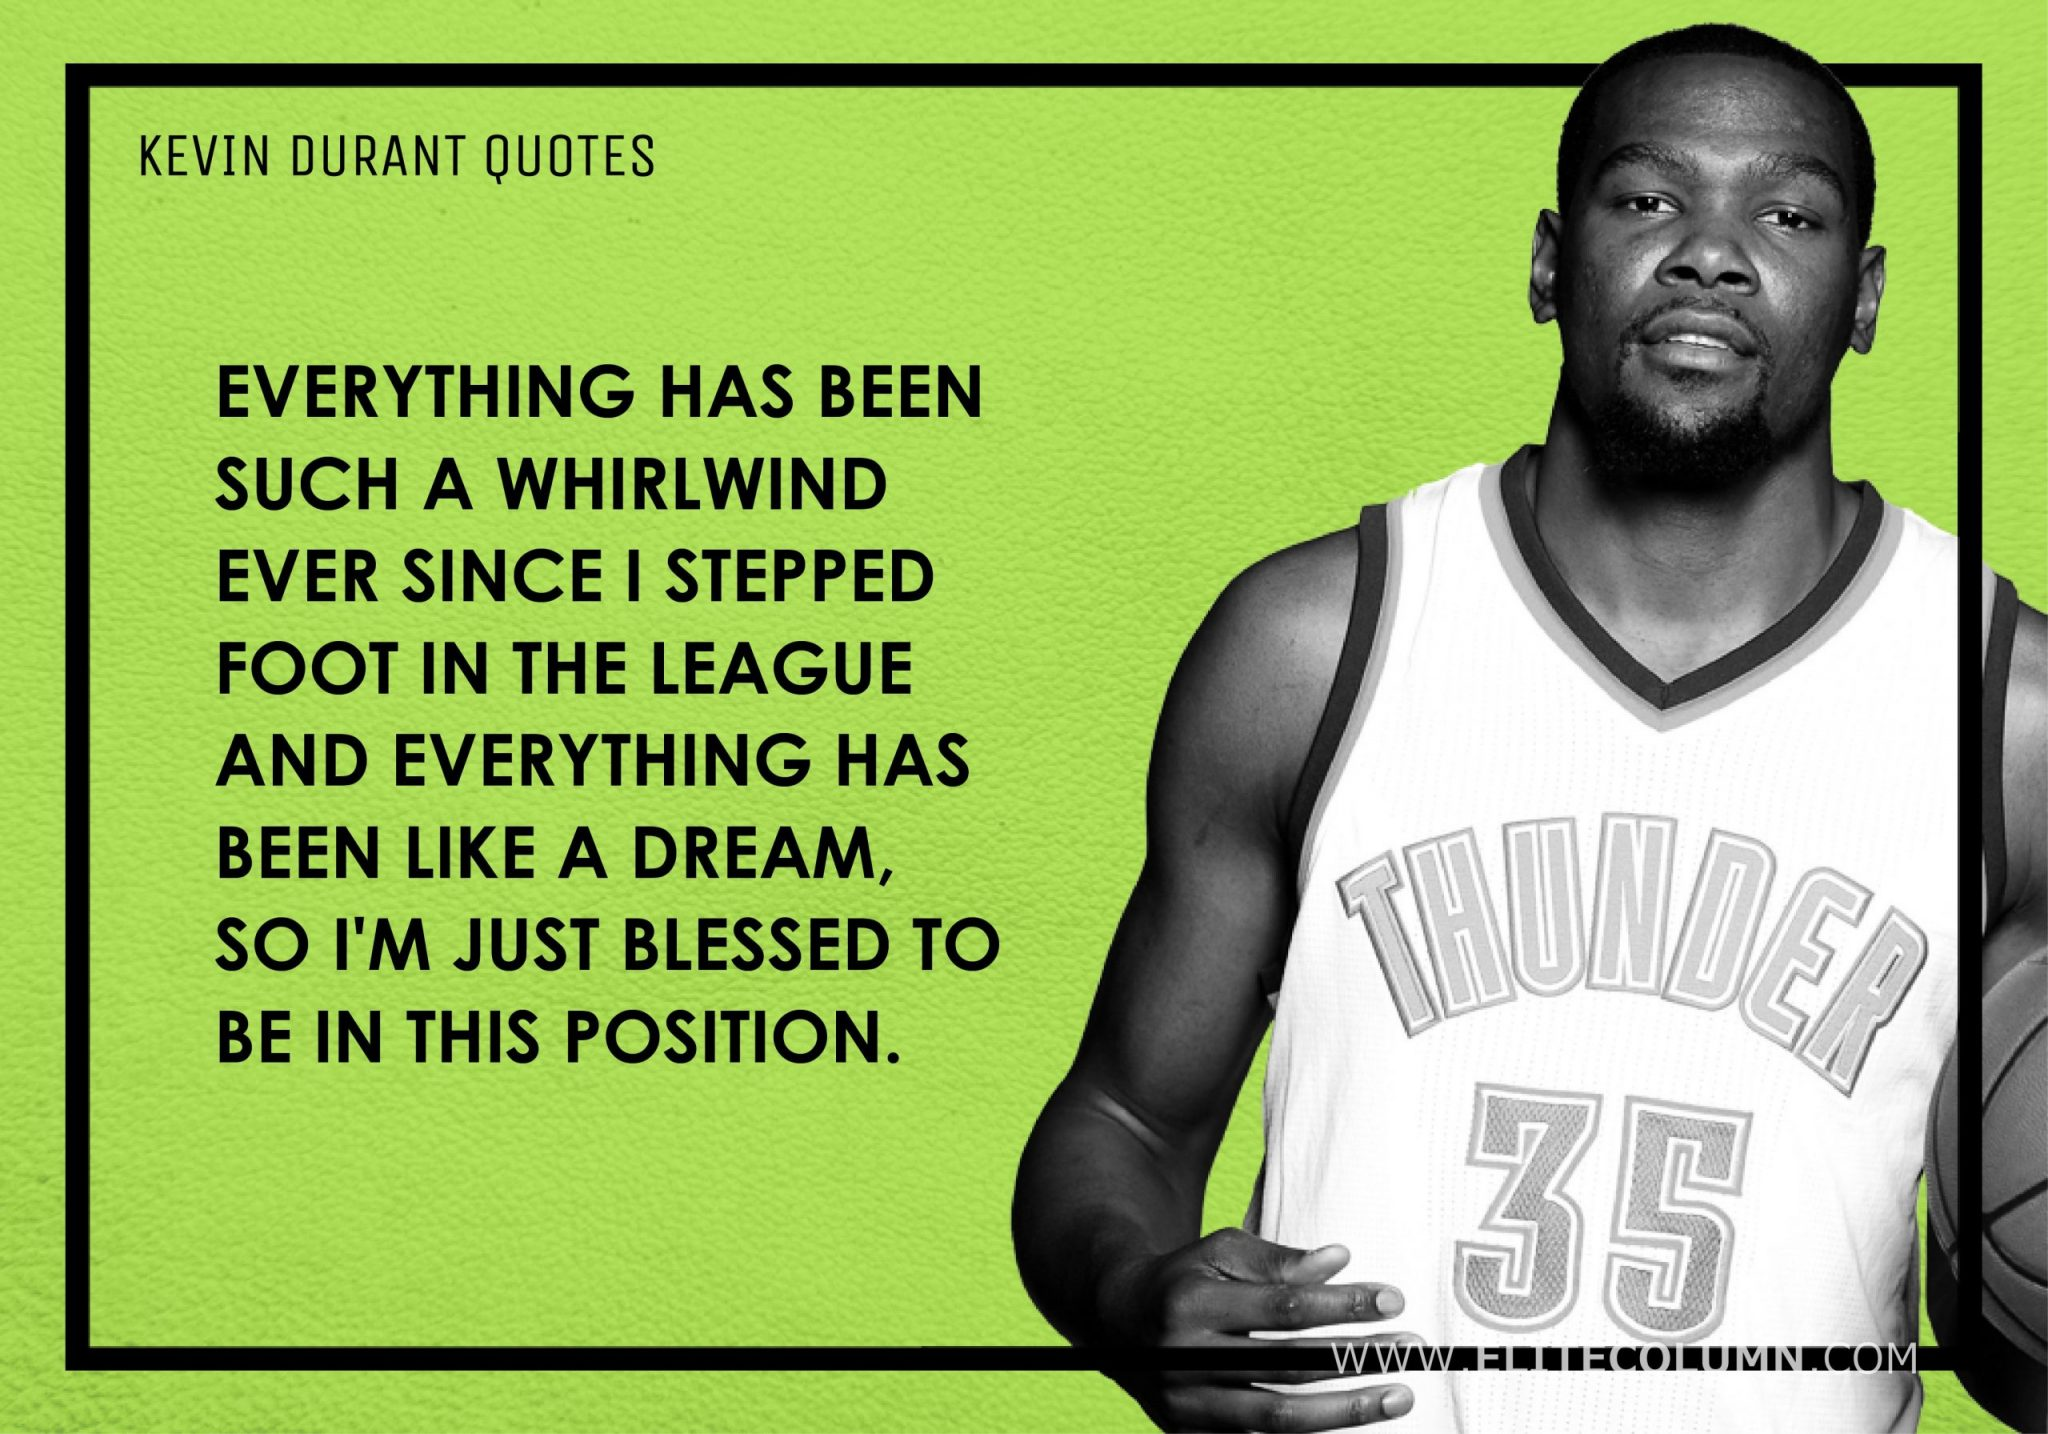 Kevin Durant Quotes (2)